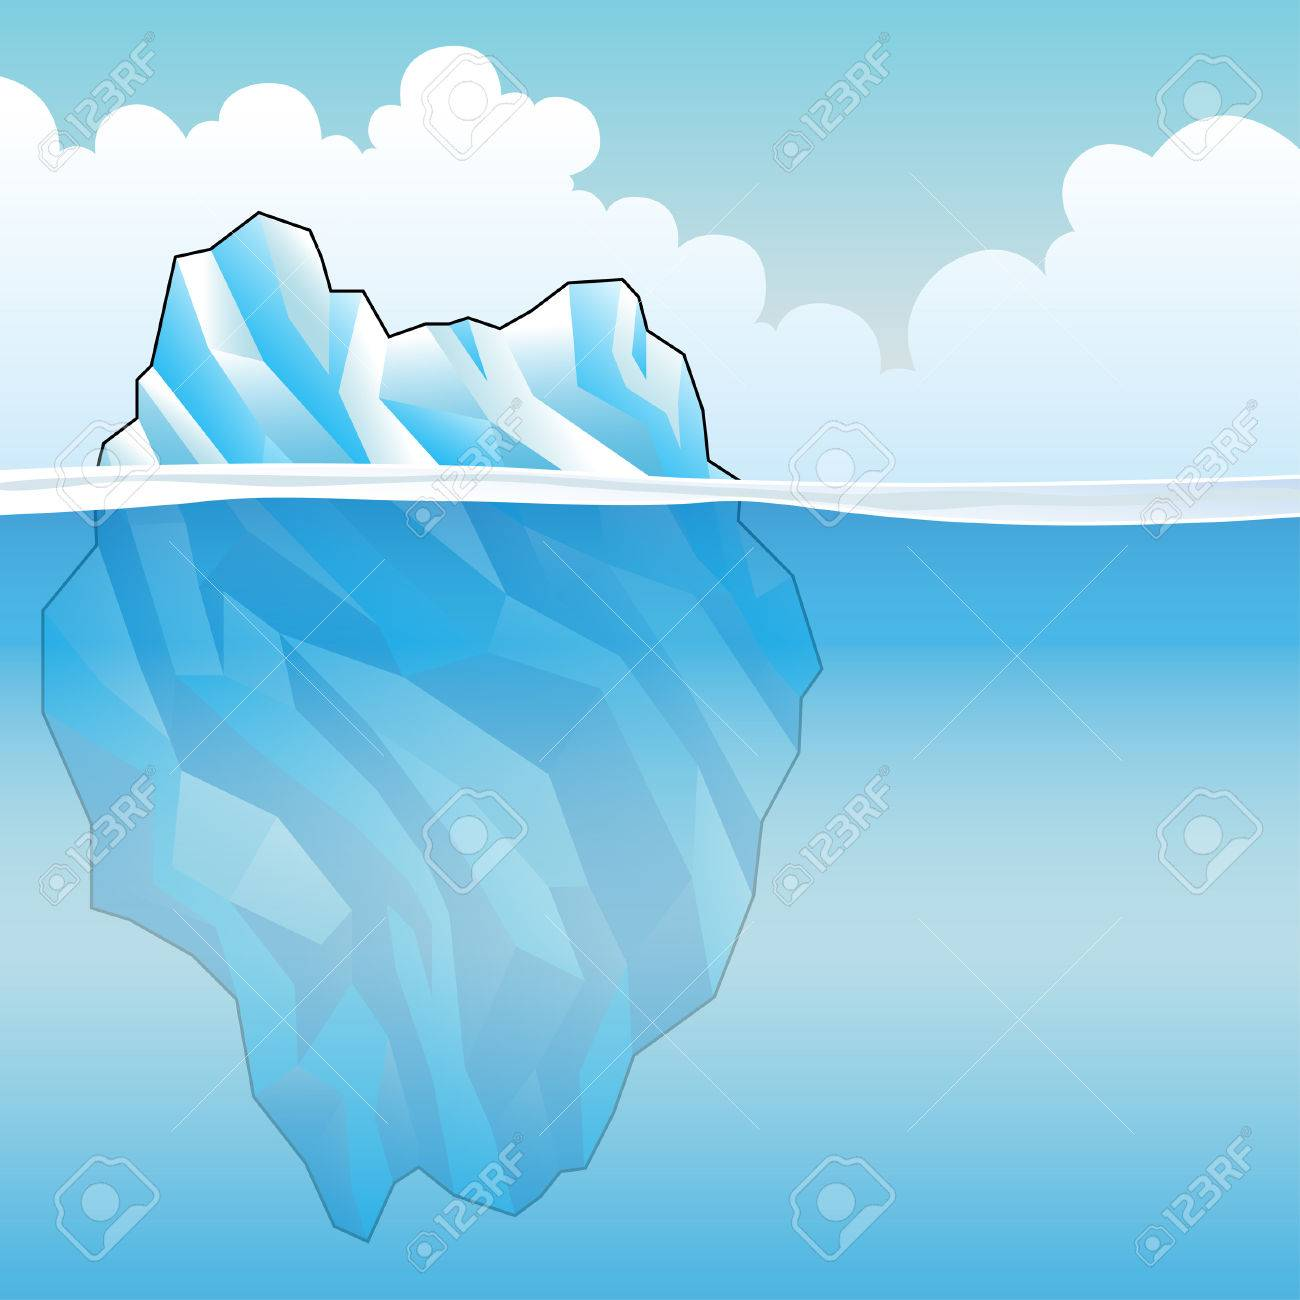 Blue Iceberg on a bright cloudy day Vector Illustration - 33599479